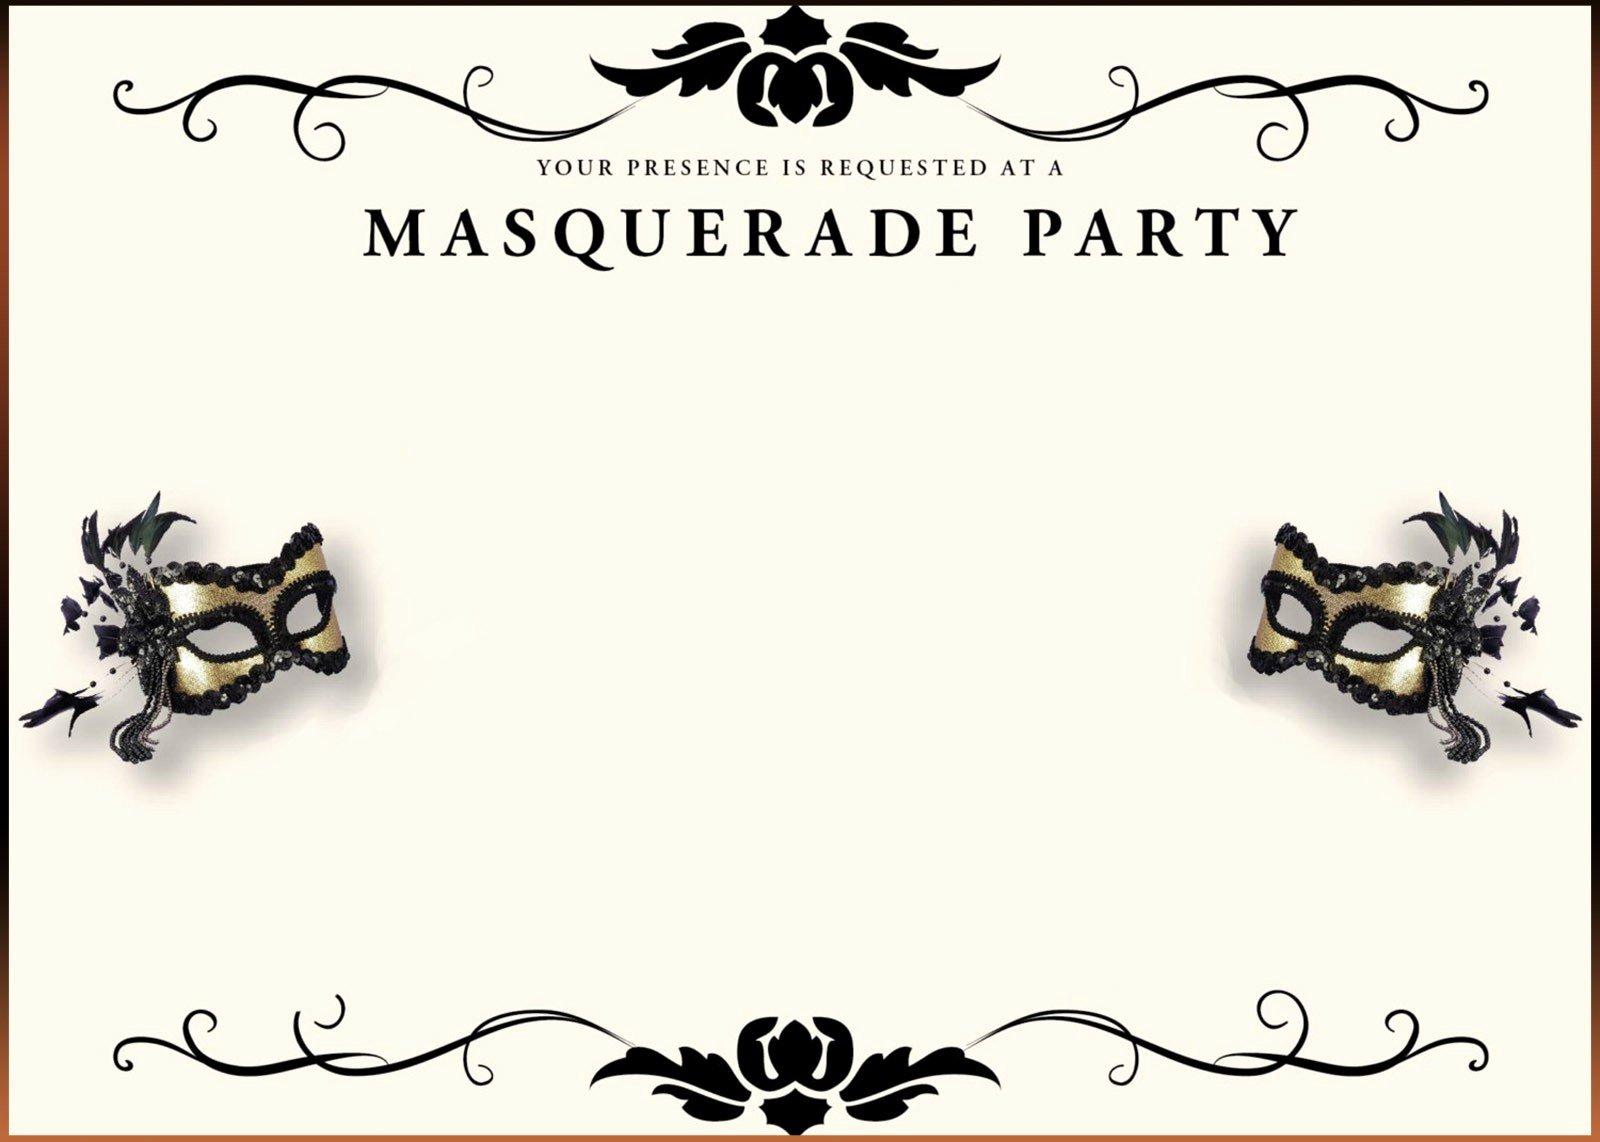 Masquerade Invitations Templates Free Luxury Free Printable Masquerade Invitation Templates